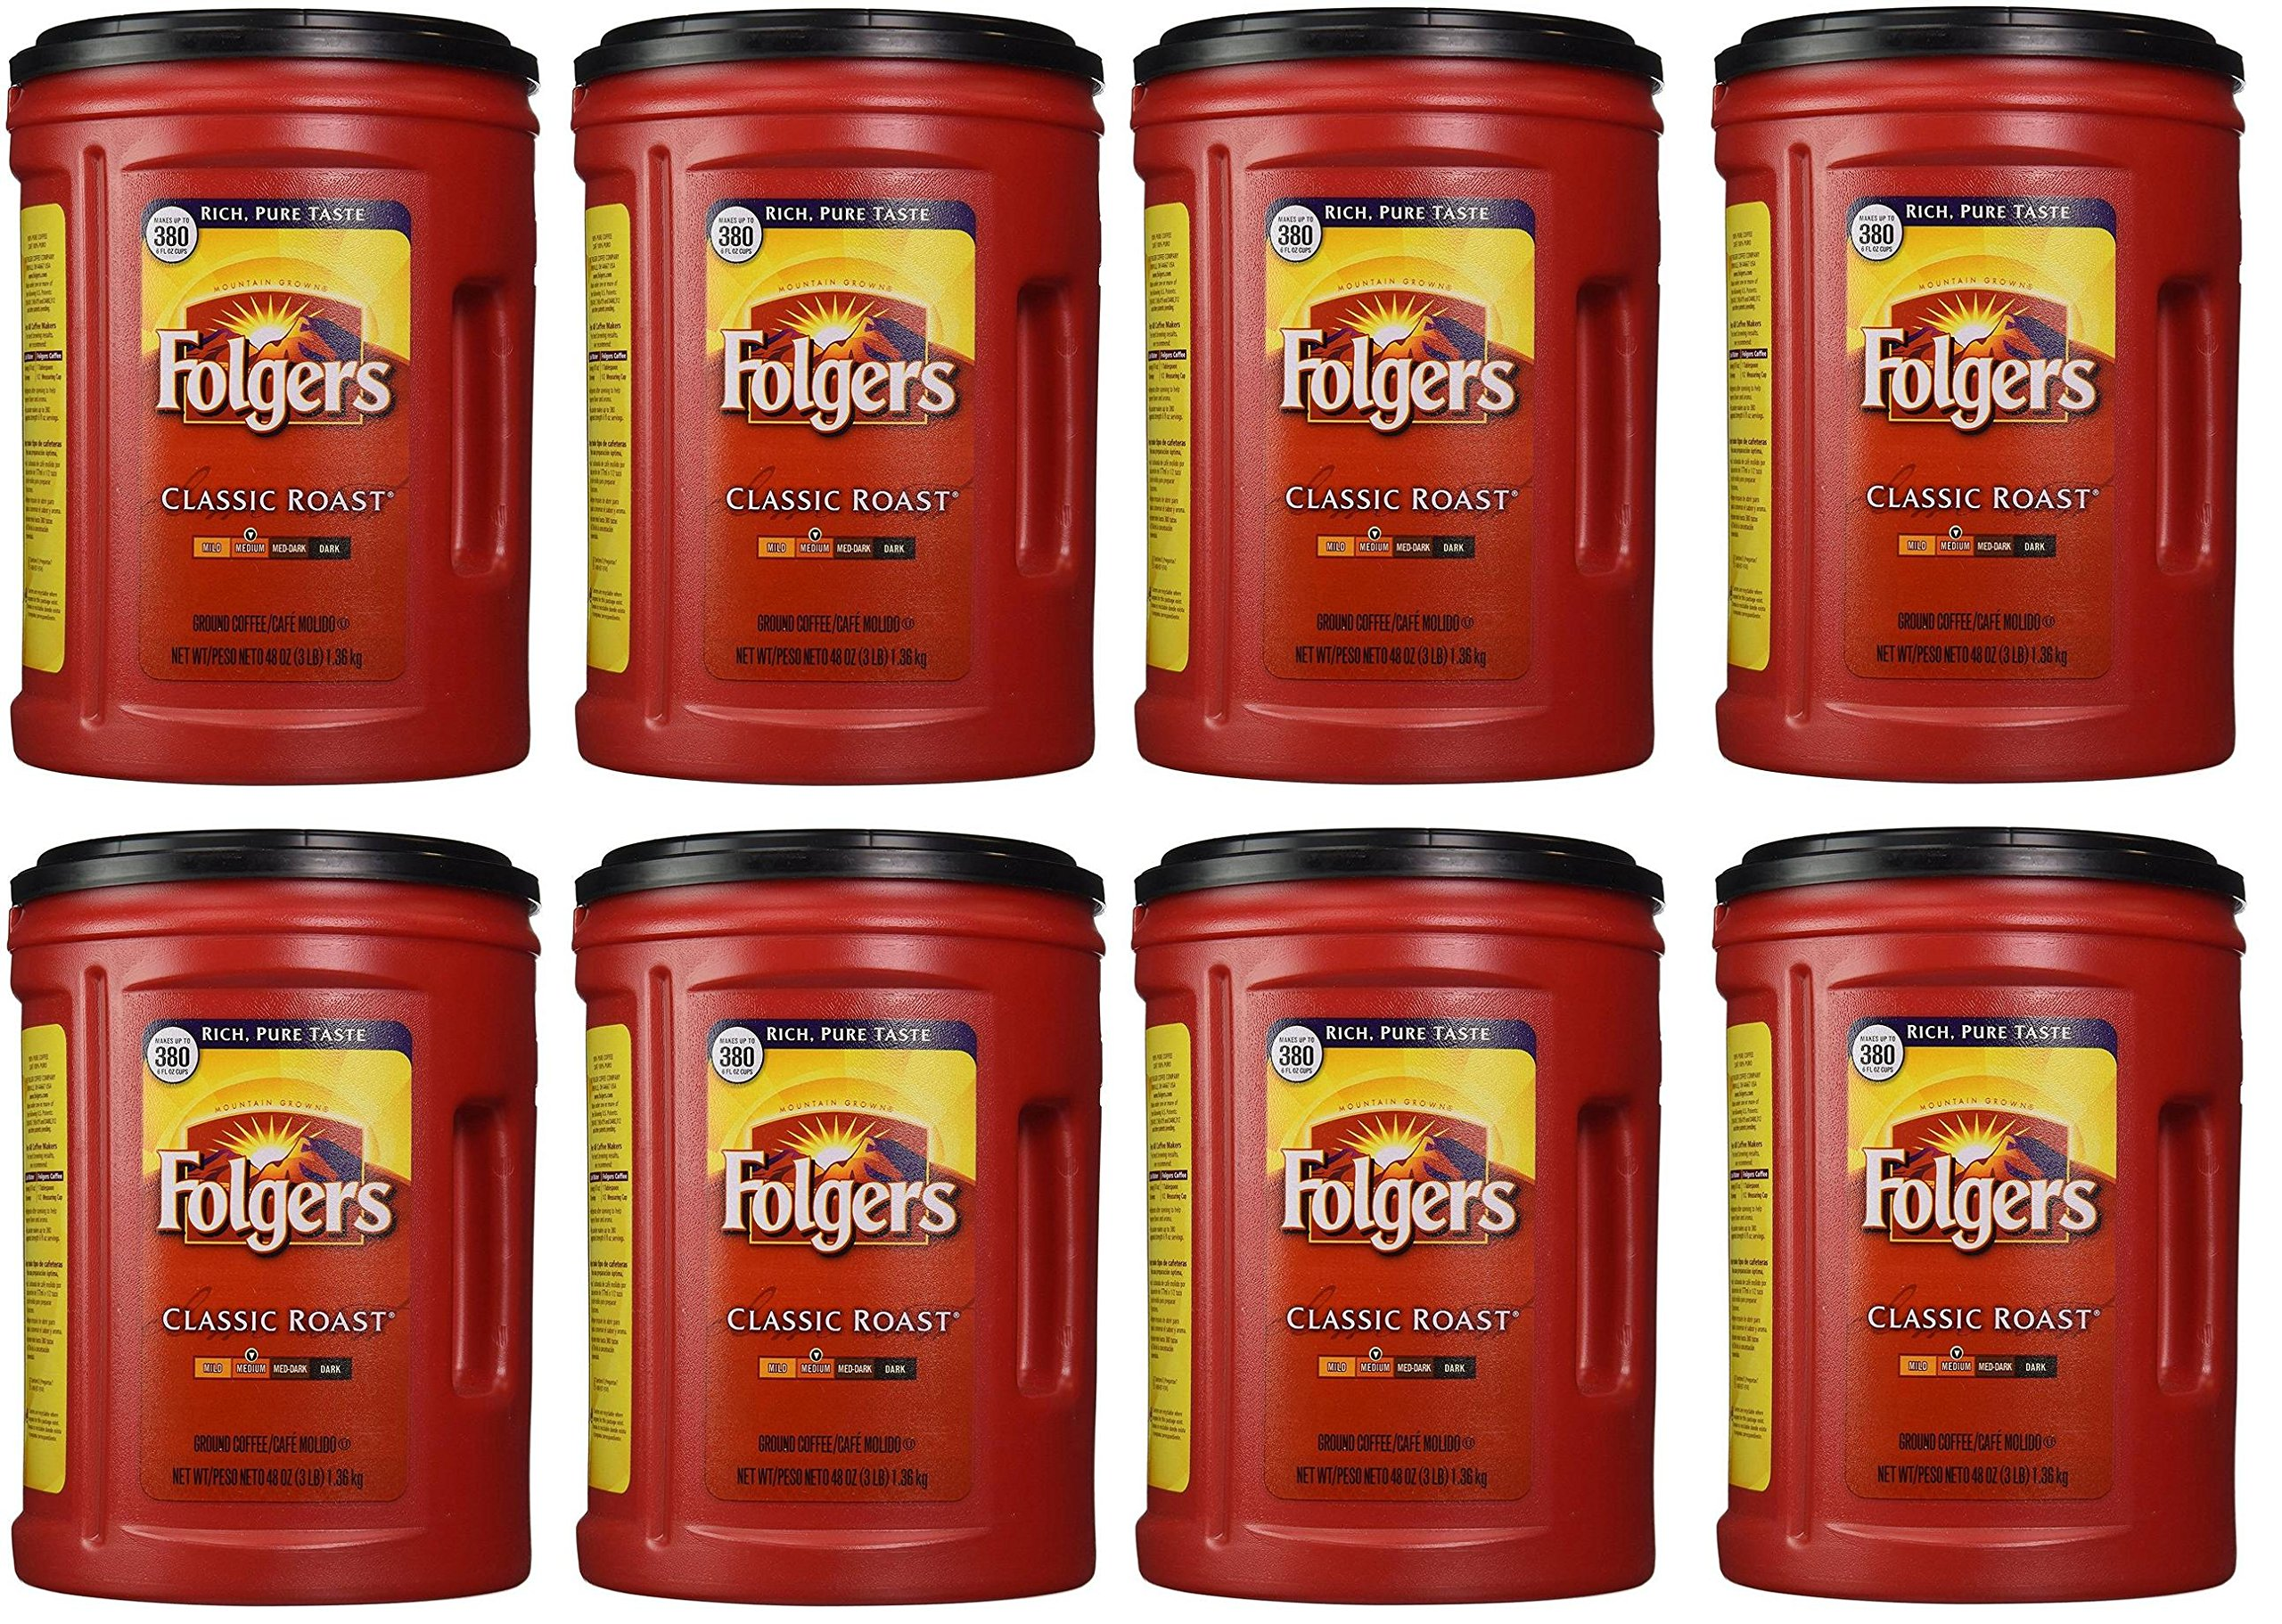 Folgers Coffee, Classic(Medium) kqFKHH Roast, 48 Ounce, 8 Pack